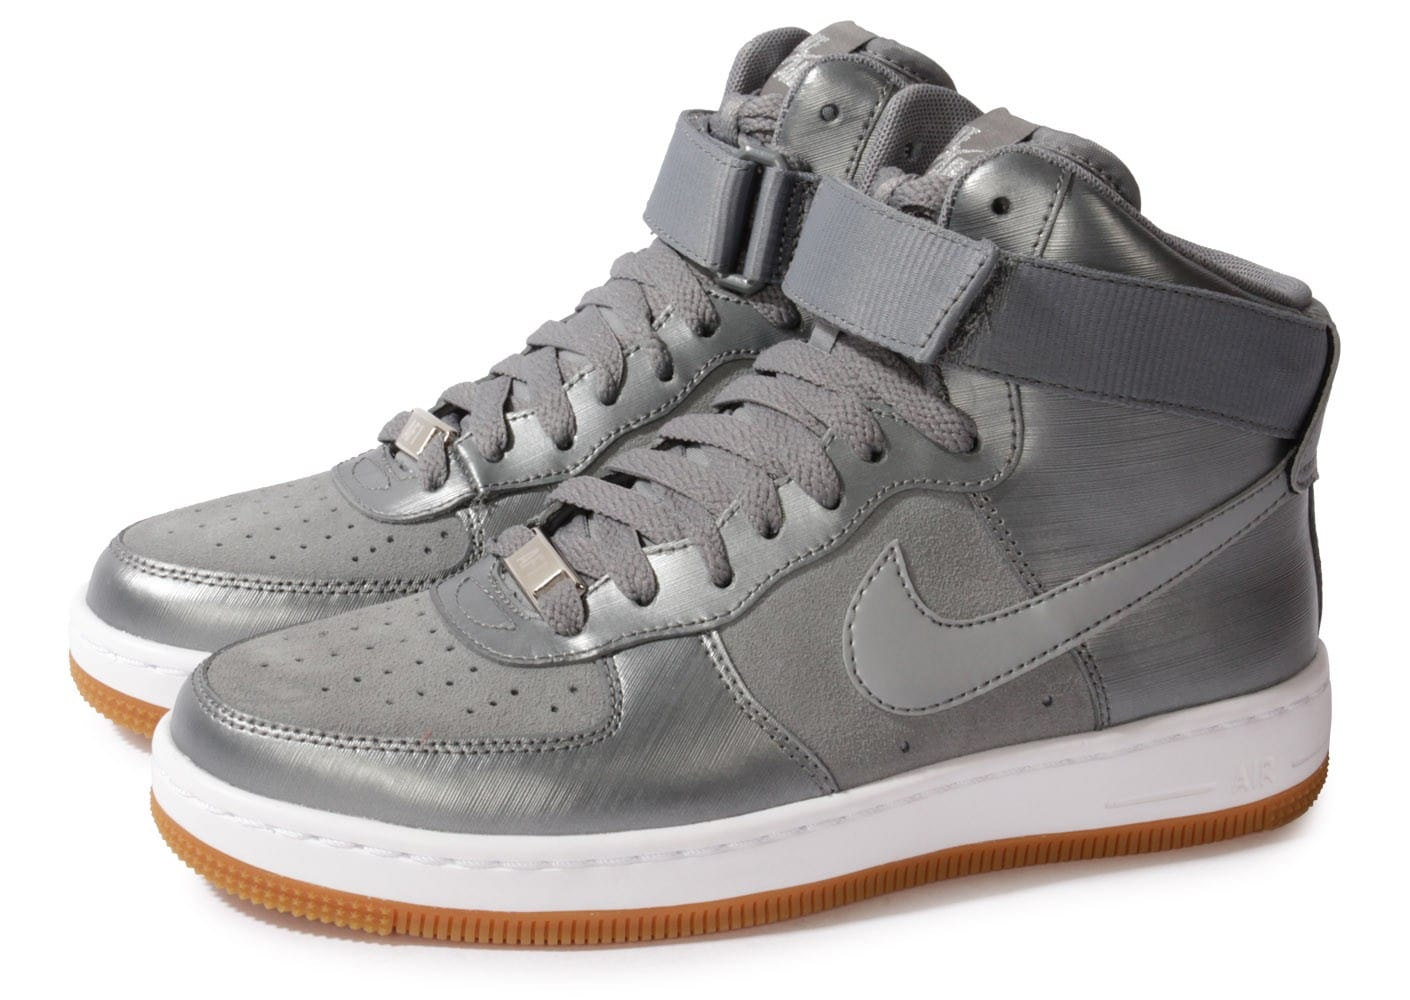 Nike Air Force 1 Airness Mid Chaussures Chaussures Chausport